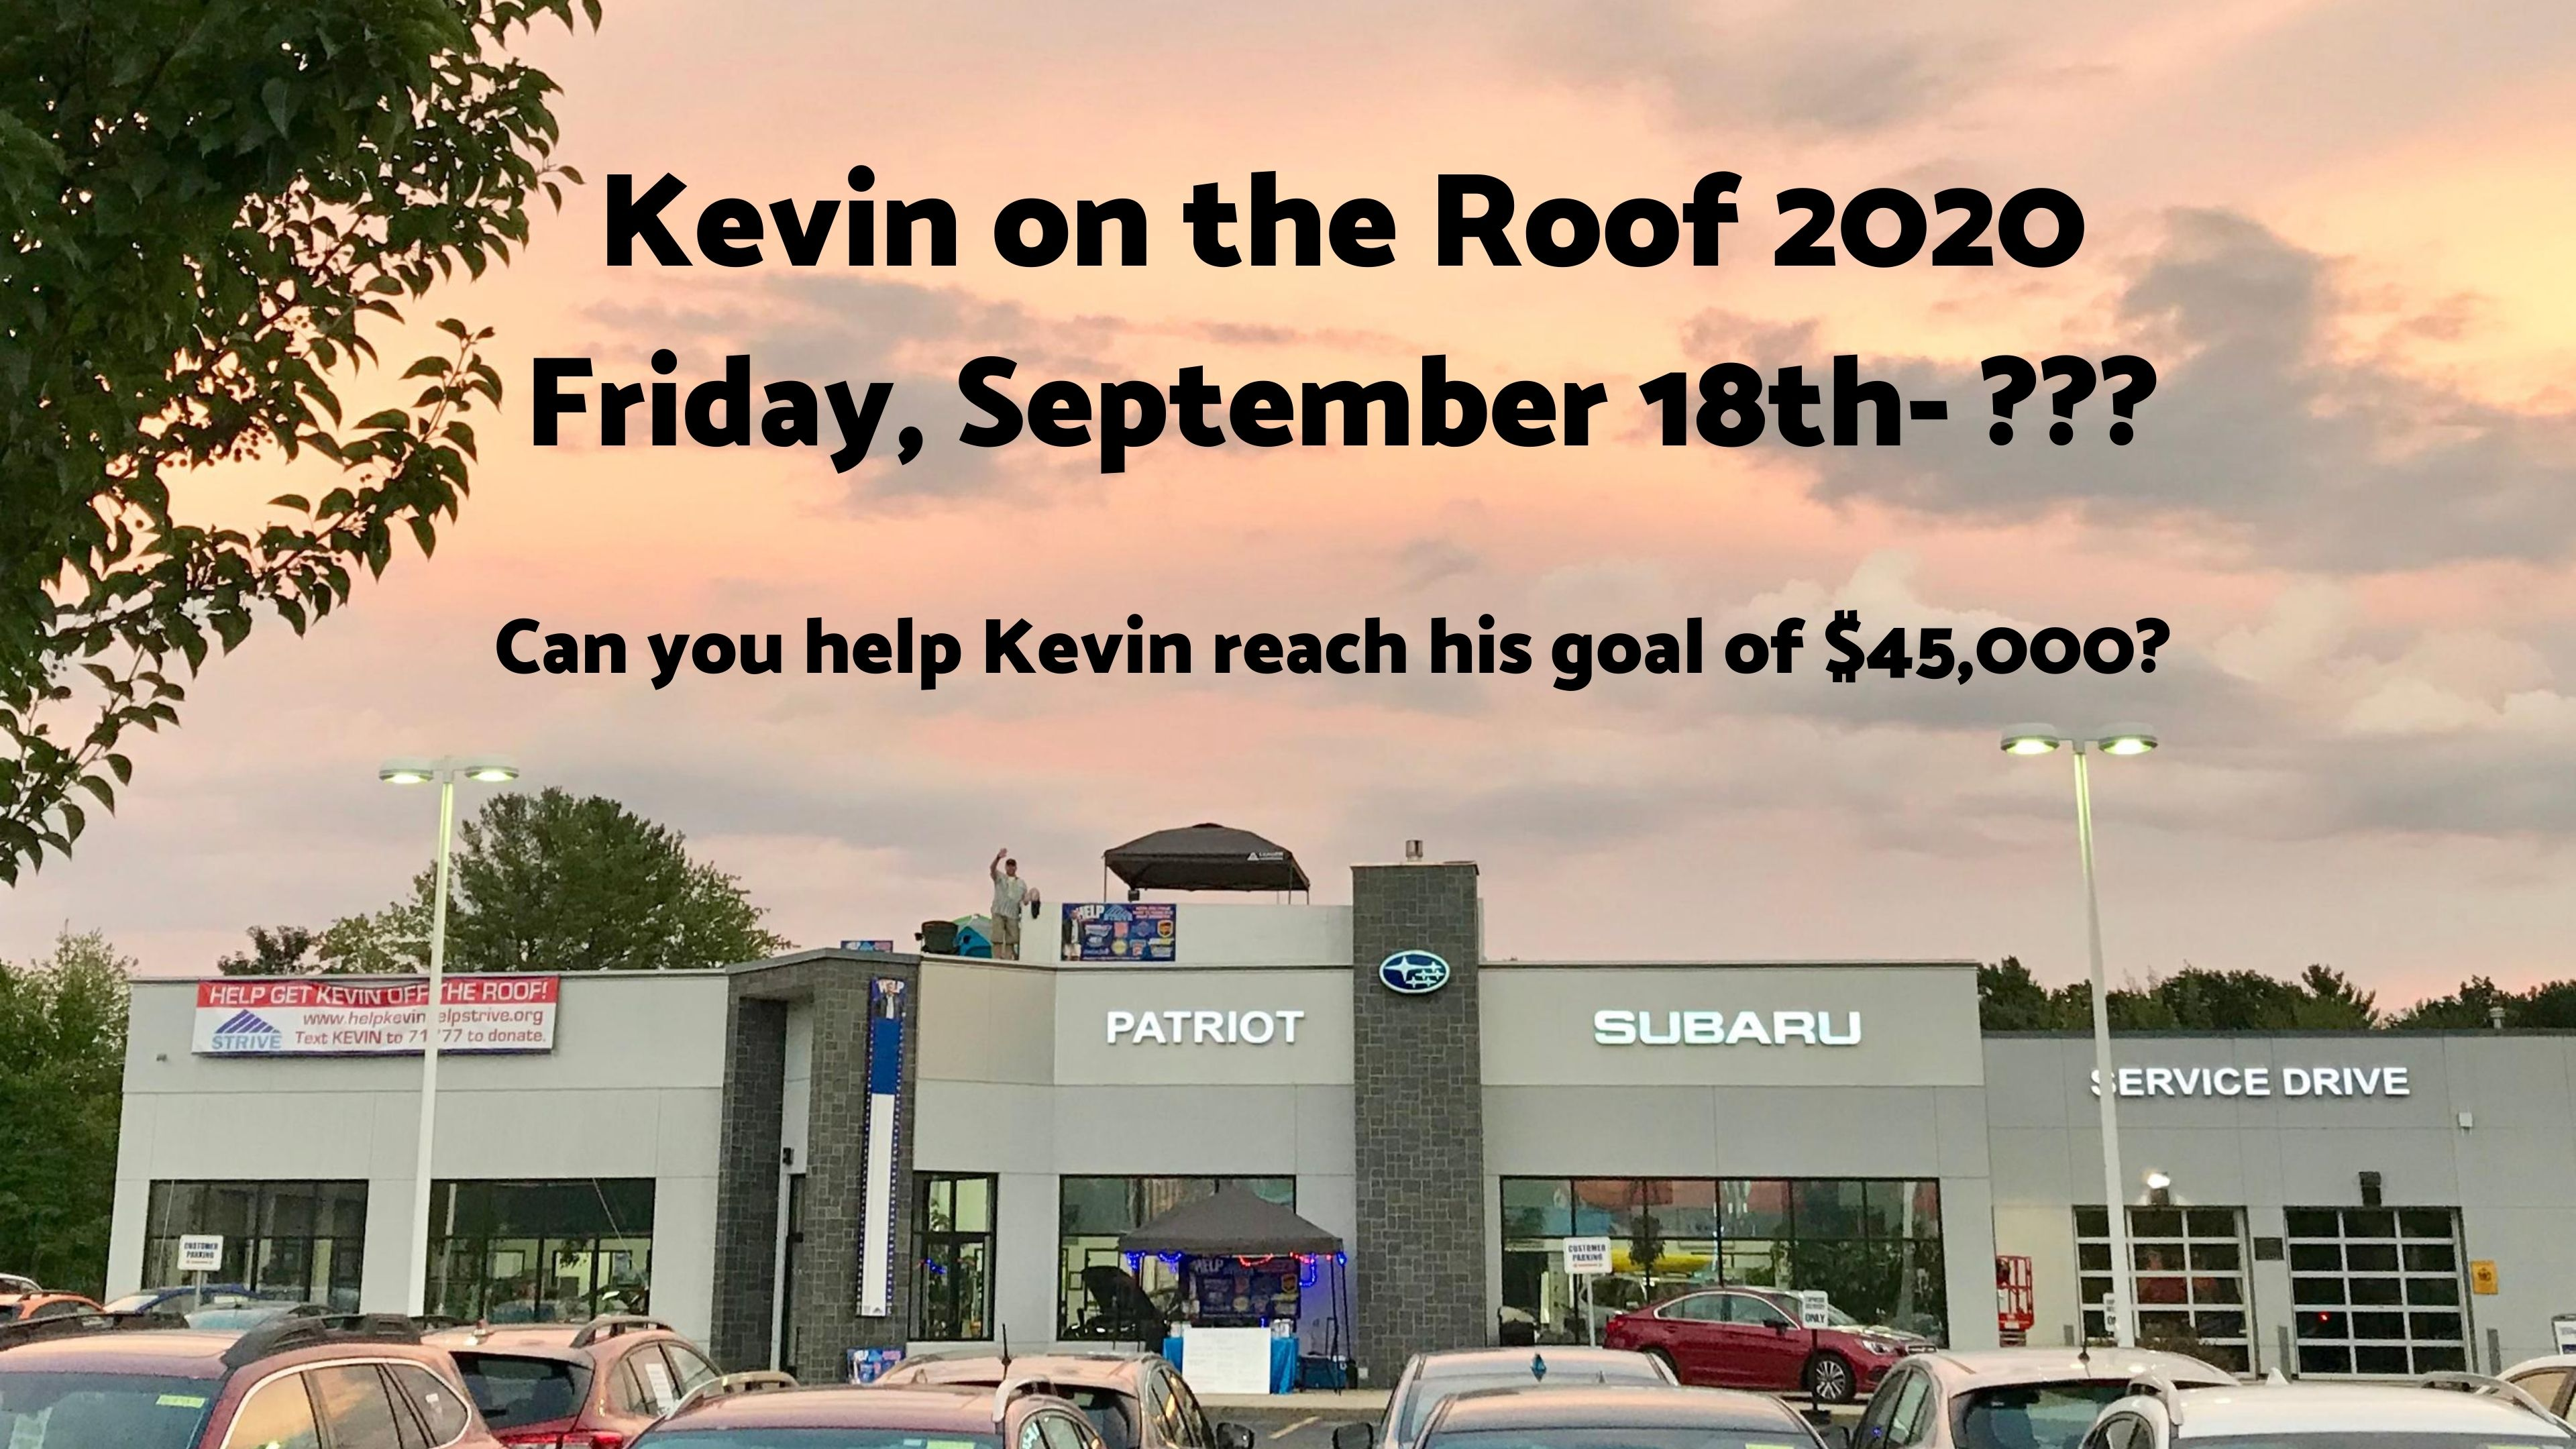 Kevin on the Roof 2020 image